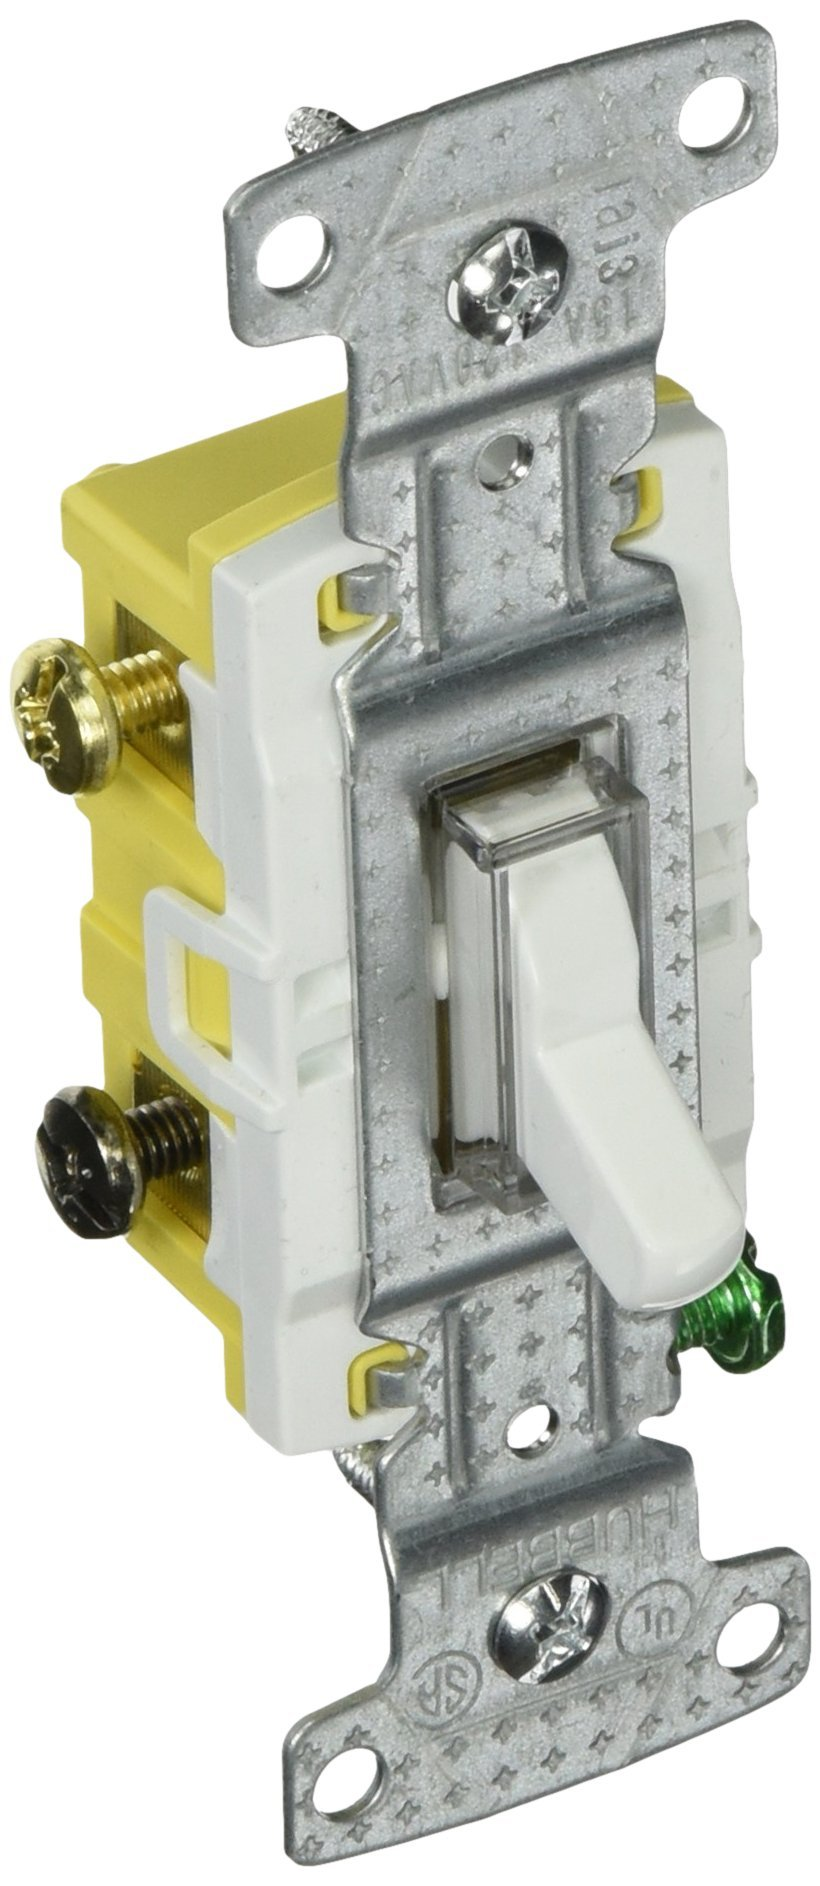 Bryant Electric RS315ILW Residential Toggle Switch, Three-Way, Illuminated, 15 Amp, 120V, Grounding, White by Bryant Electric